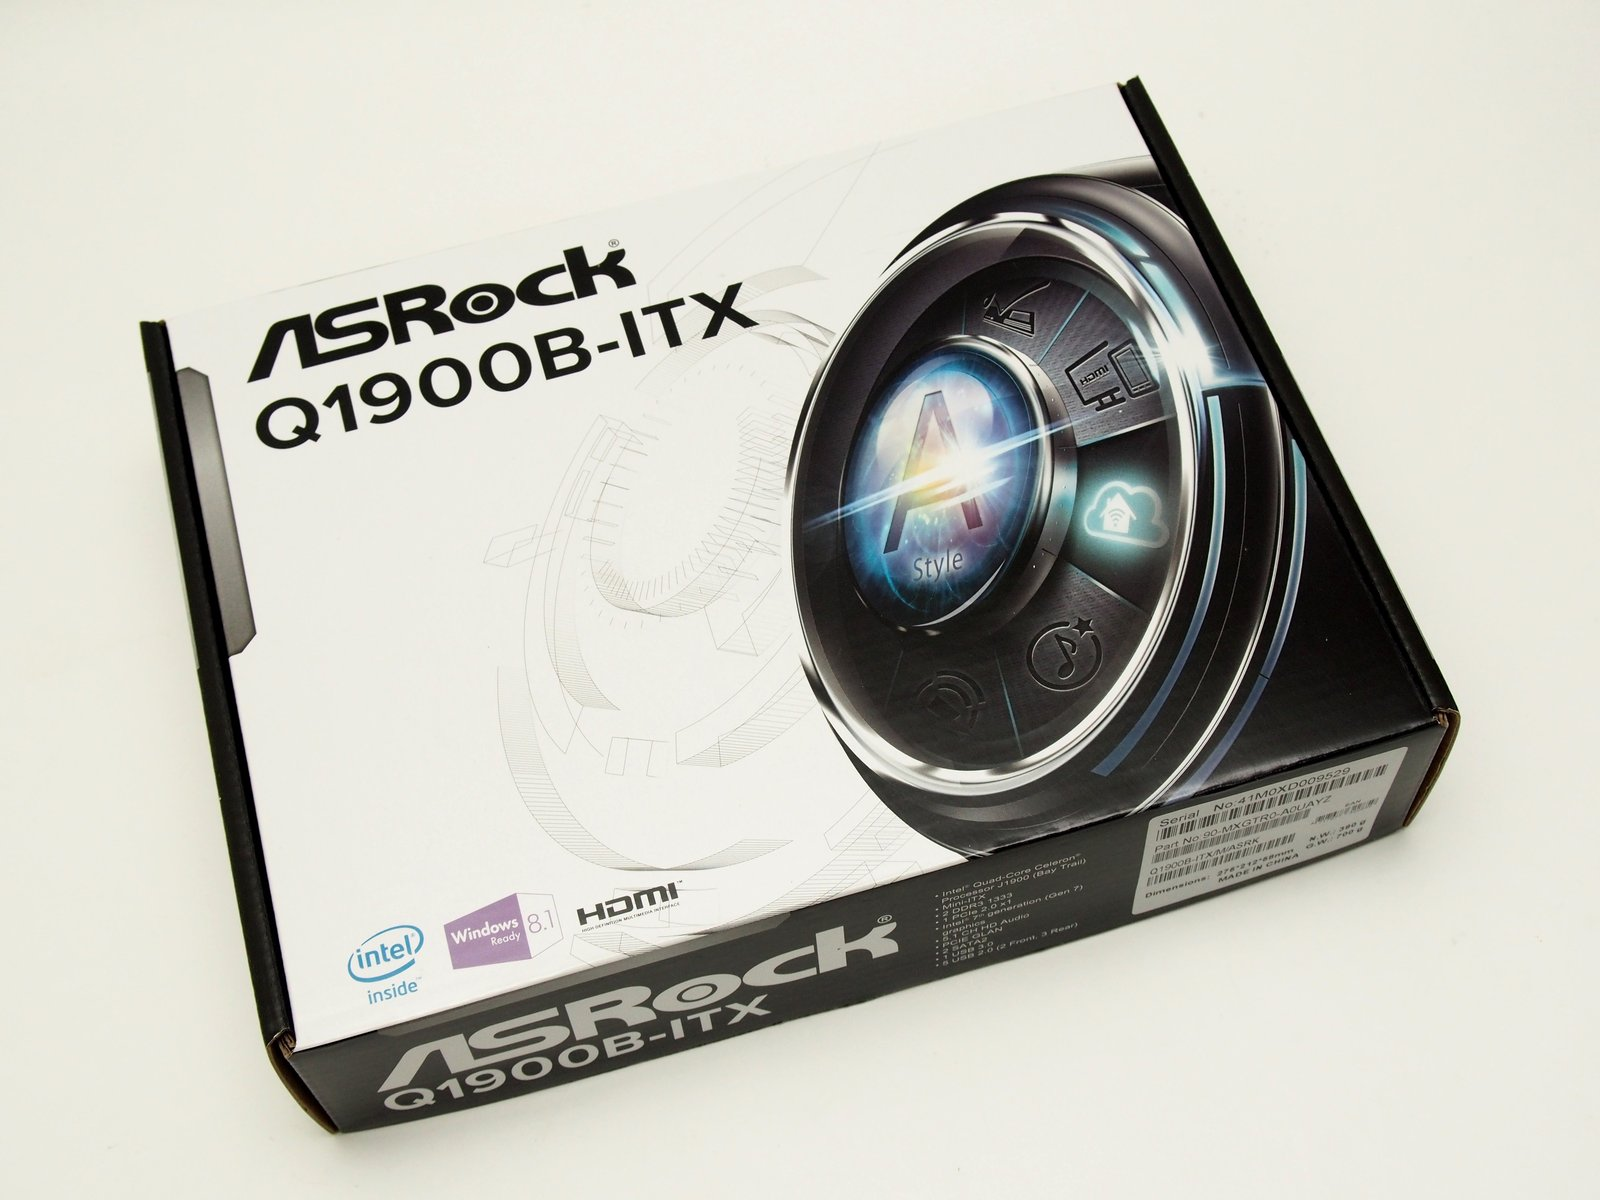 [XF] 超低功耗 Bay Trail 四核心平台 ASRock 華擎 Q1900B-ITX